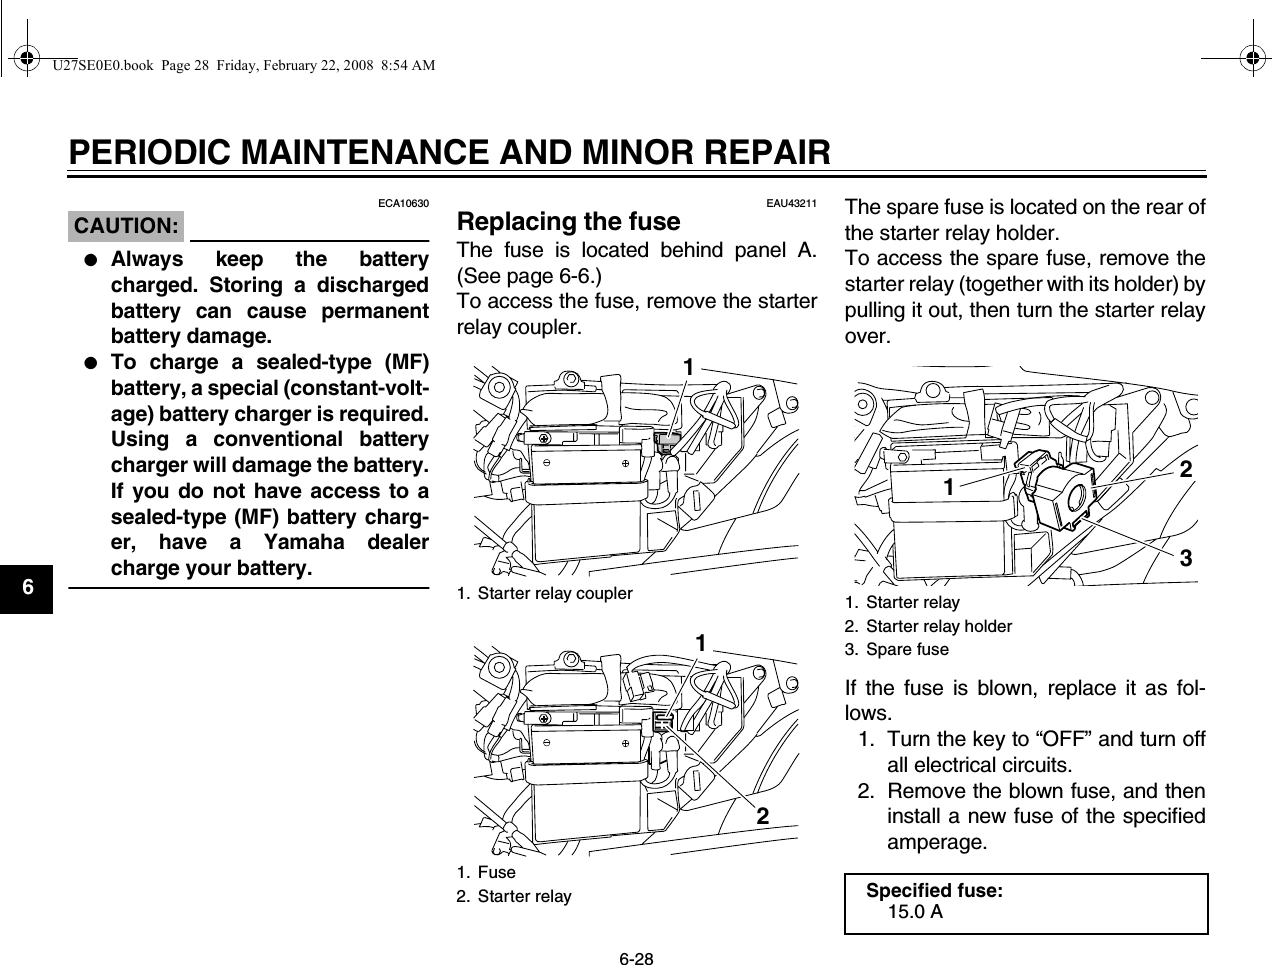 Yamaha Ybr125 Owners Manual ManualsLib Makes It Easy To Find Manuals